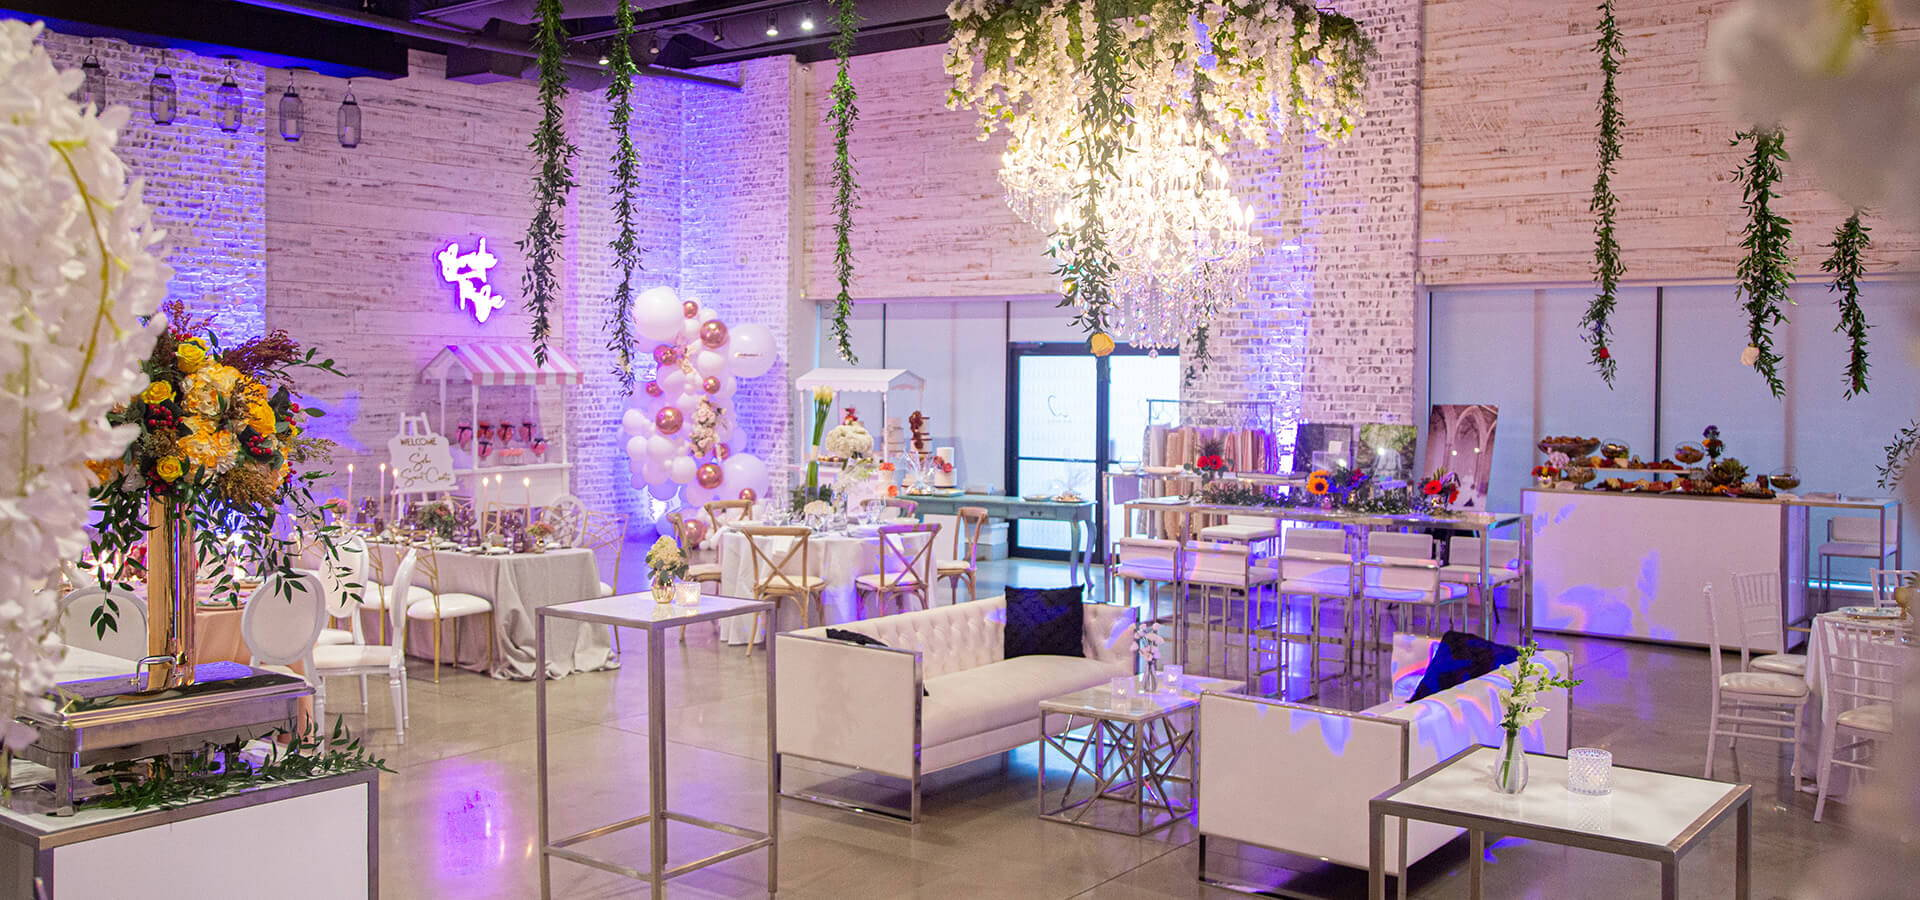 Hero image for A Stunning Wedding Open House at W Event Boutique